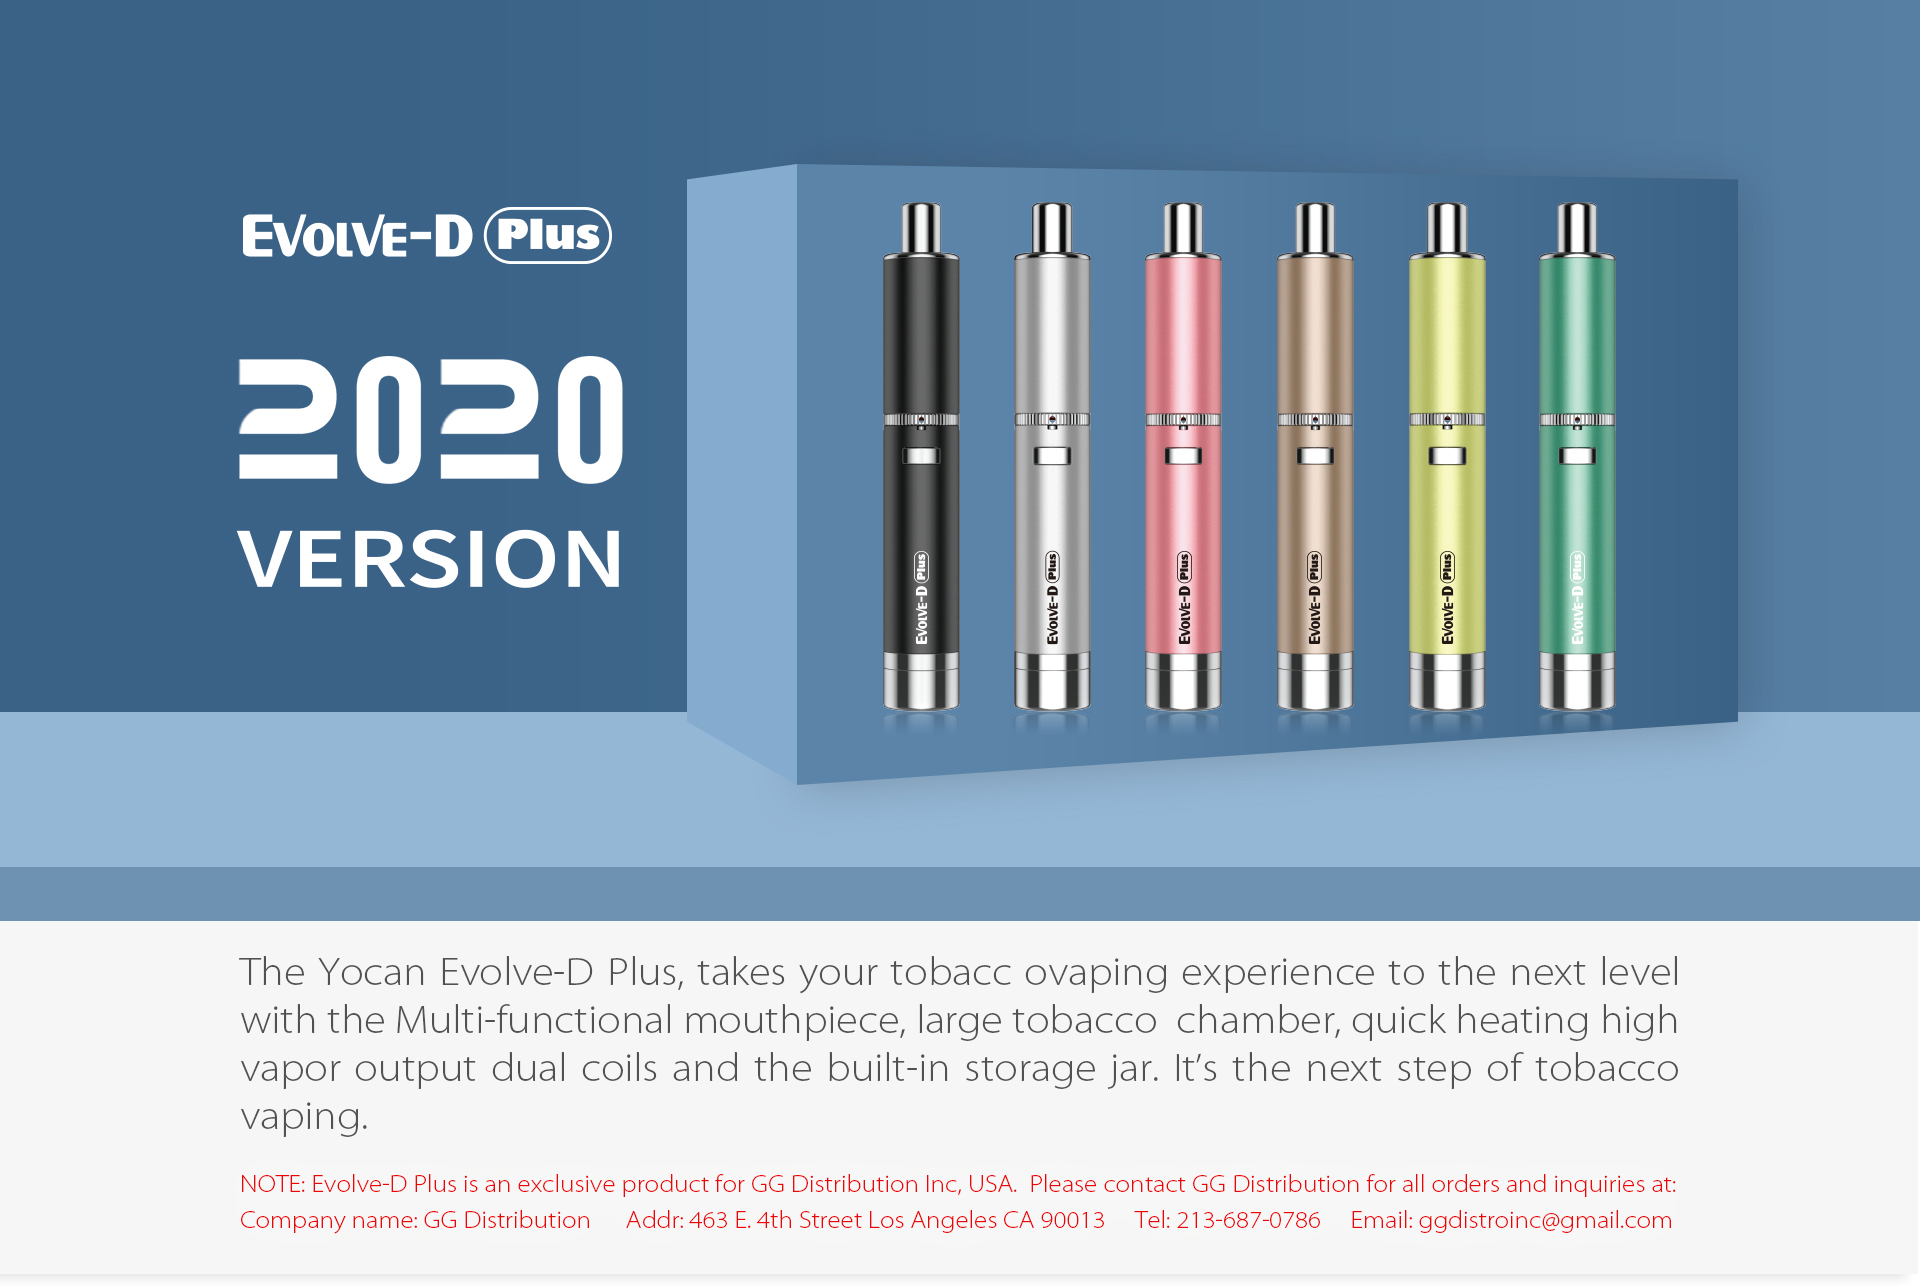 Toke on the go conveniently and discreetly with the Yocan Evolve-D Plus 2020 version easy to use e-pipe combustion pen for dry herb and flower blends.